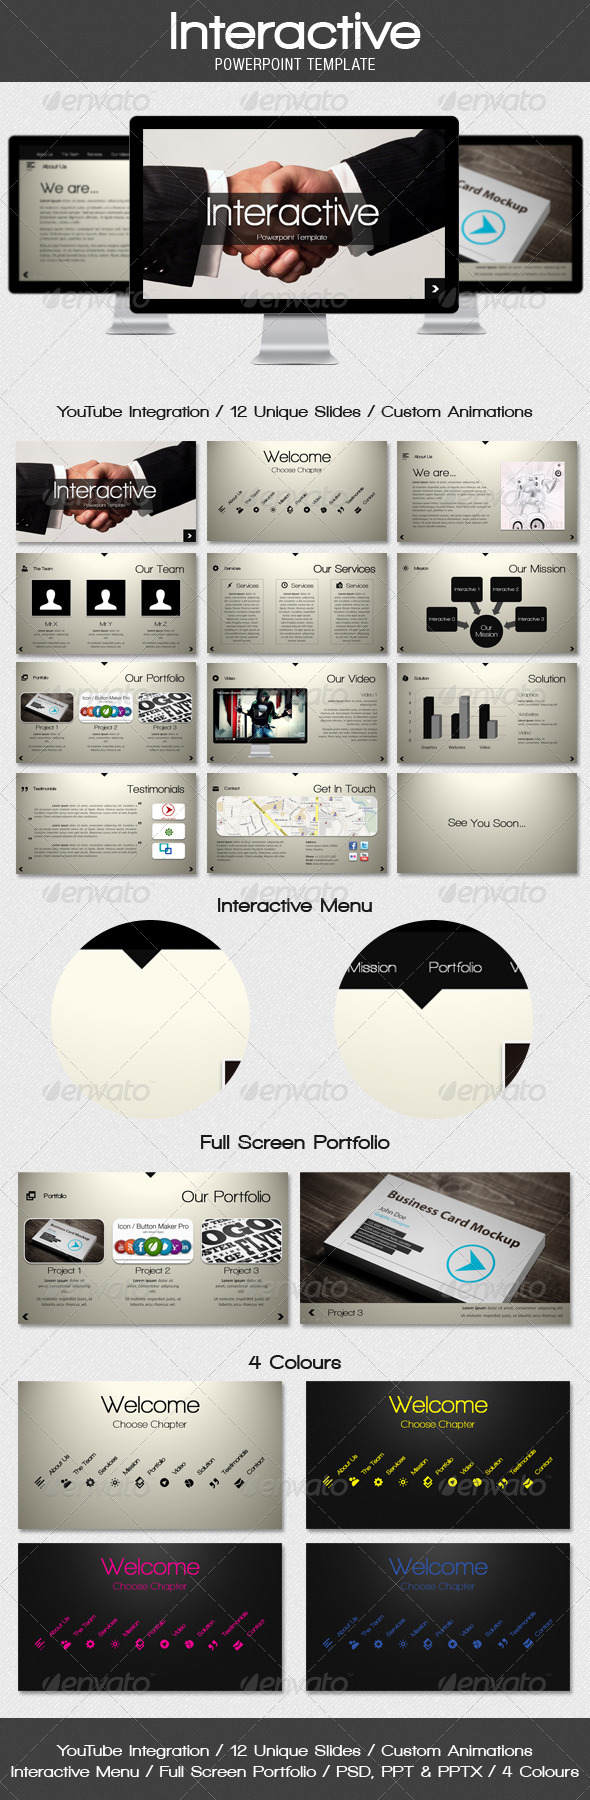 Interactive - Powerpoint Template - Powerpoint Templates Presentation Templates